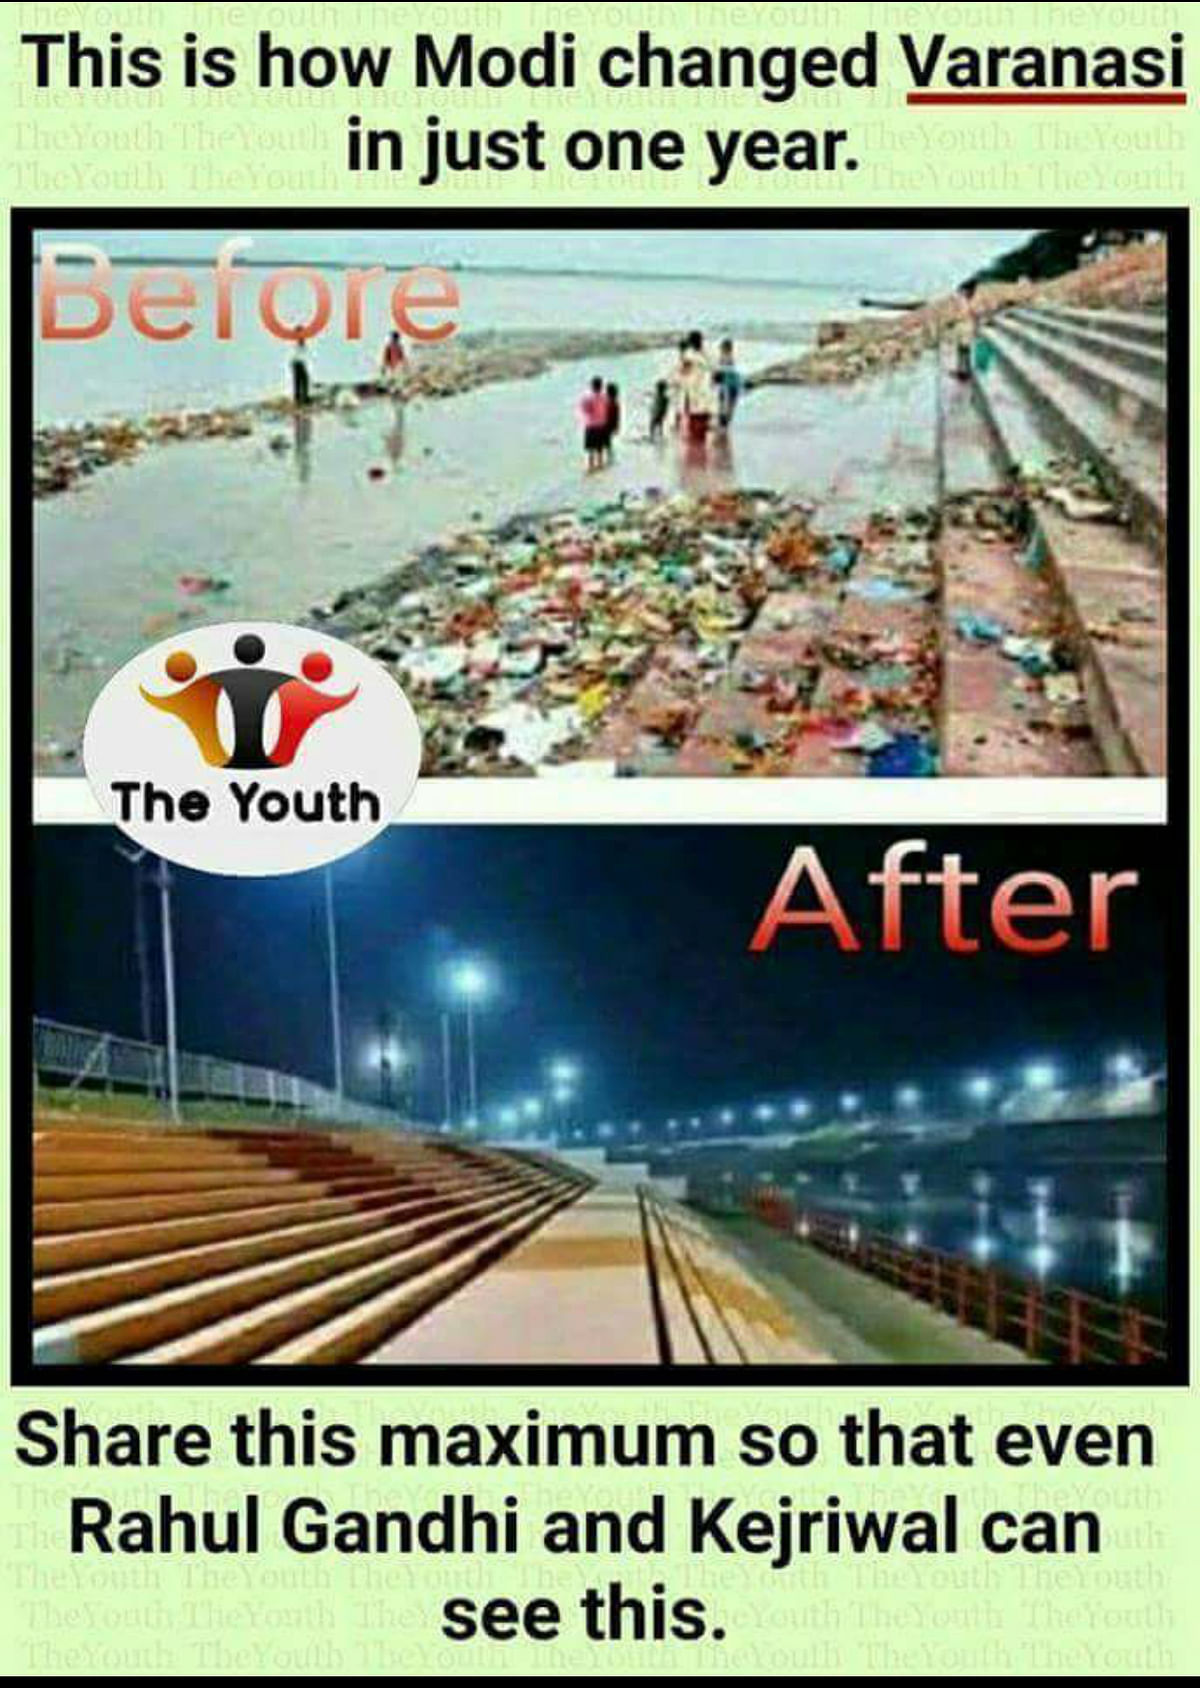 Before & After Pic of Clean Varanasi Ghats Post Modi Govt is Fake!